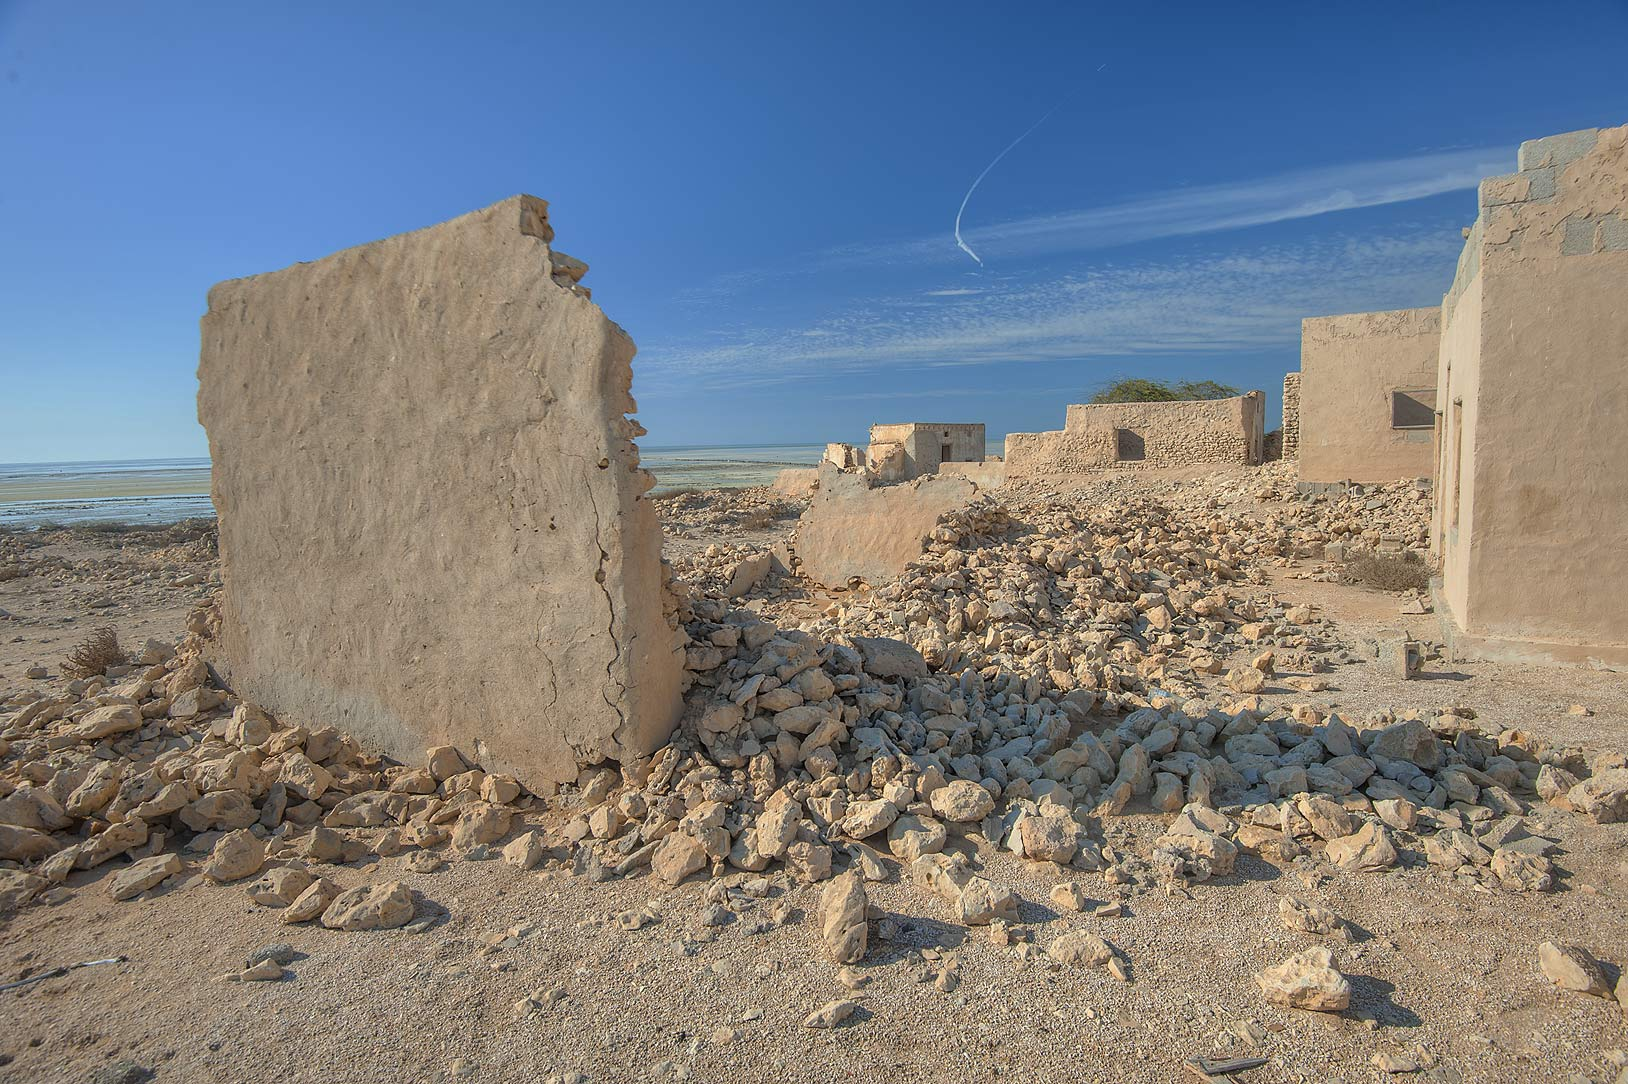 Stone ruins a village of Al Jumail (Jumayl) west of Ruwais. Northern Qatar